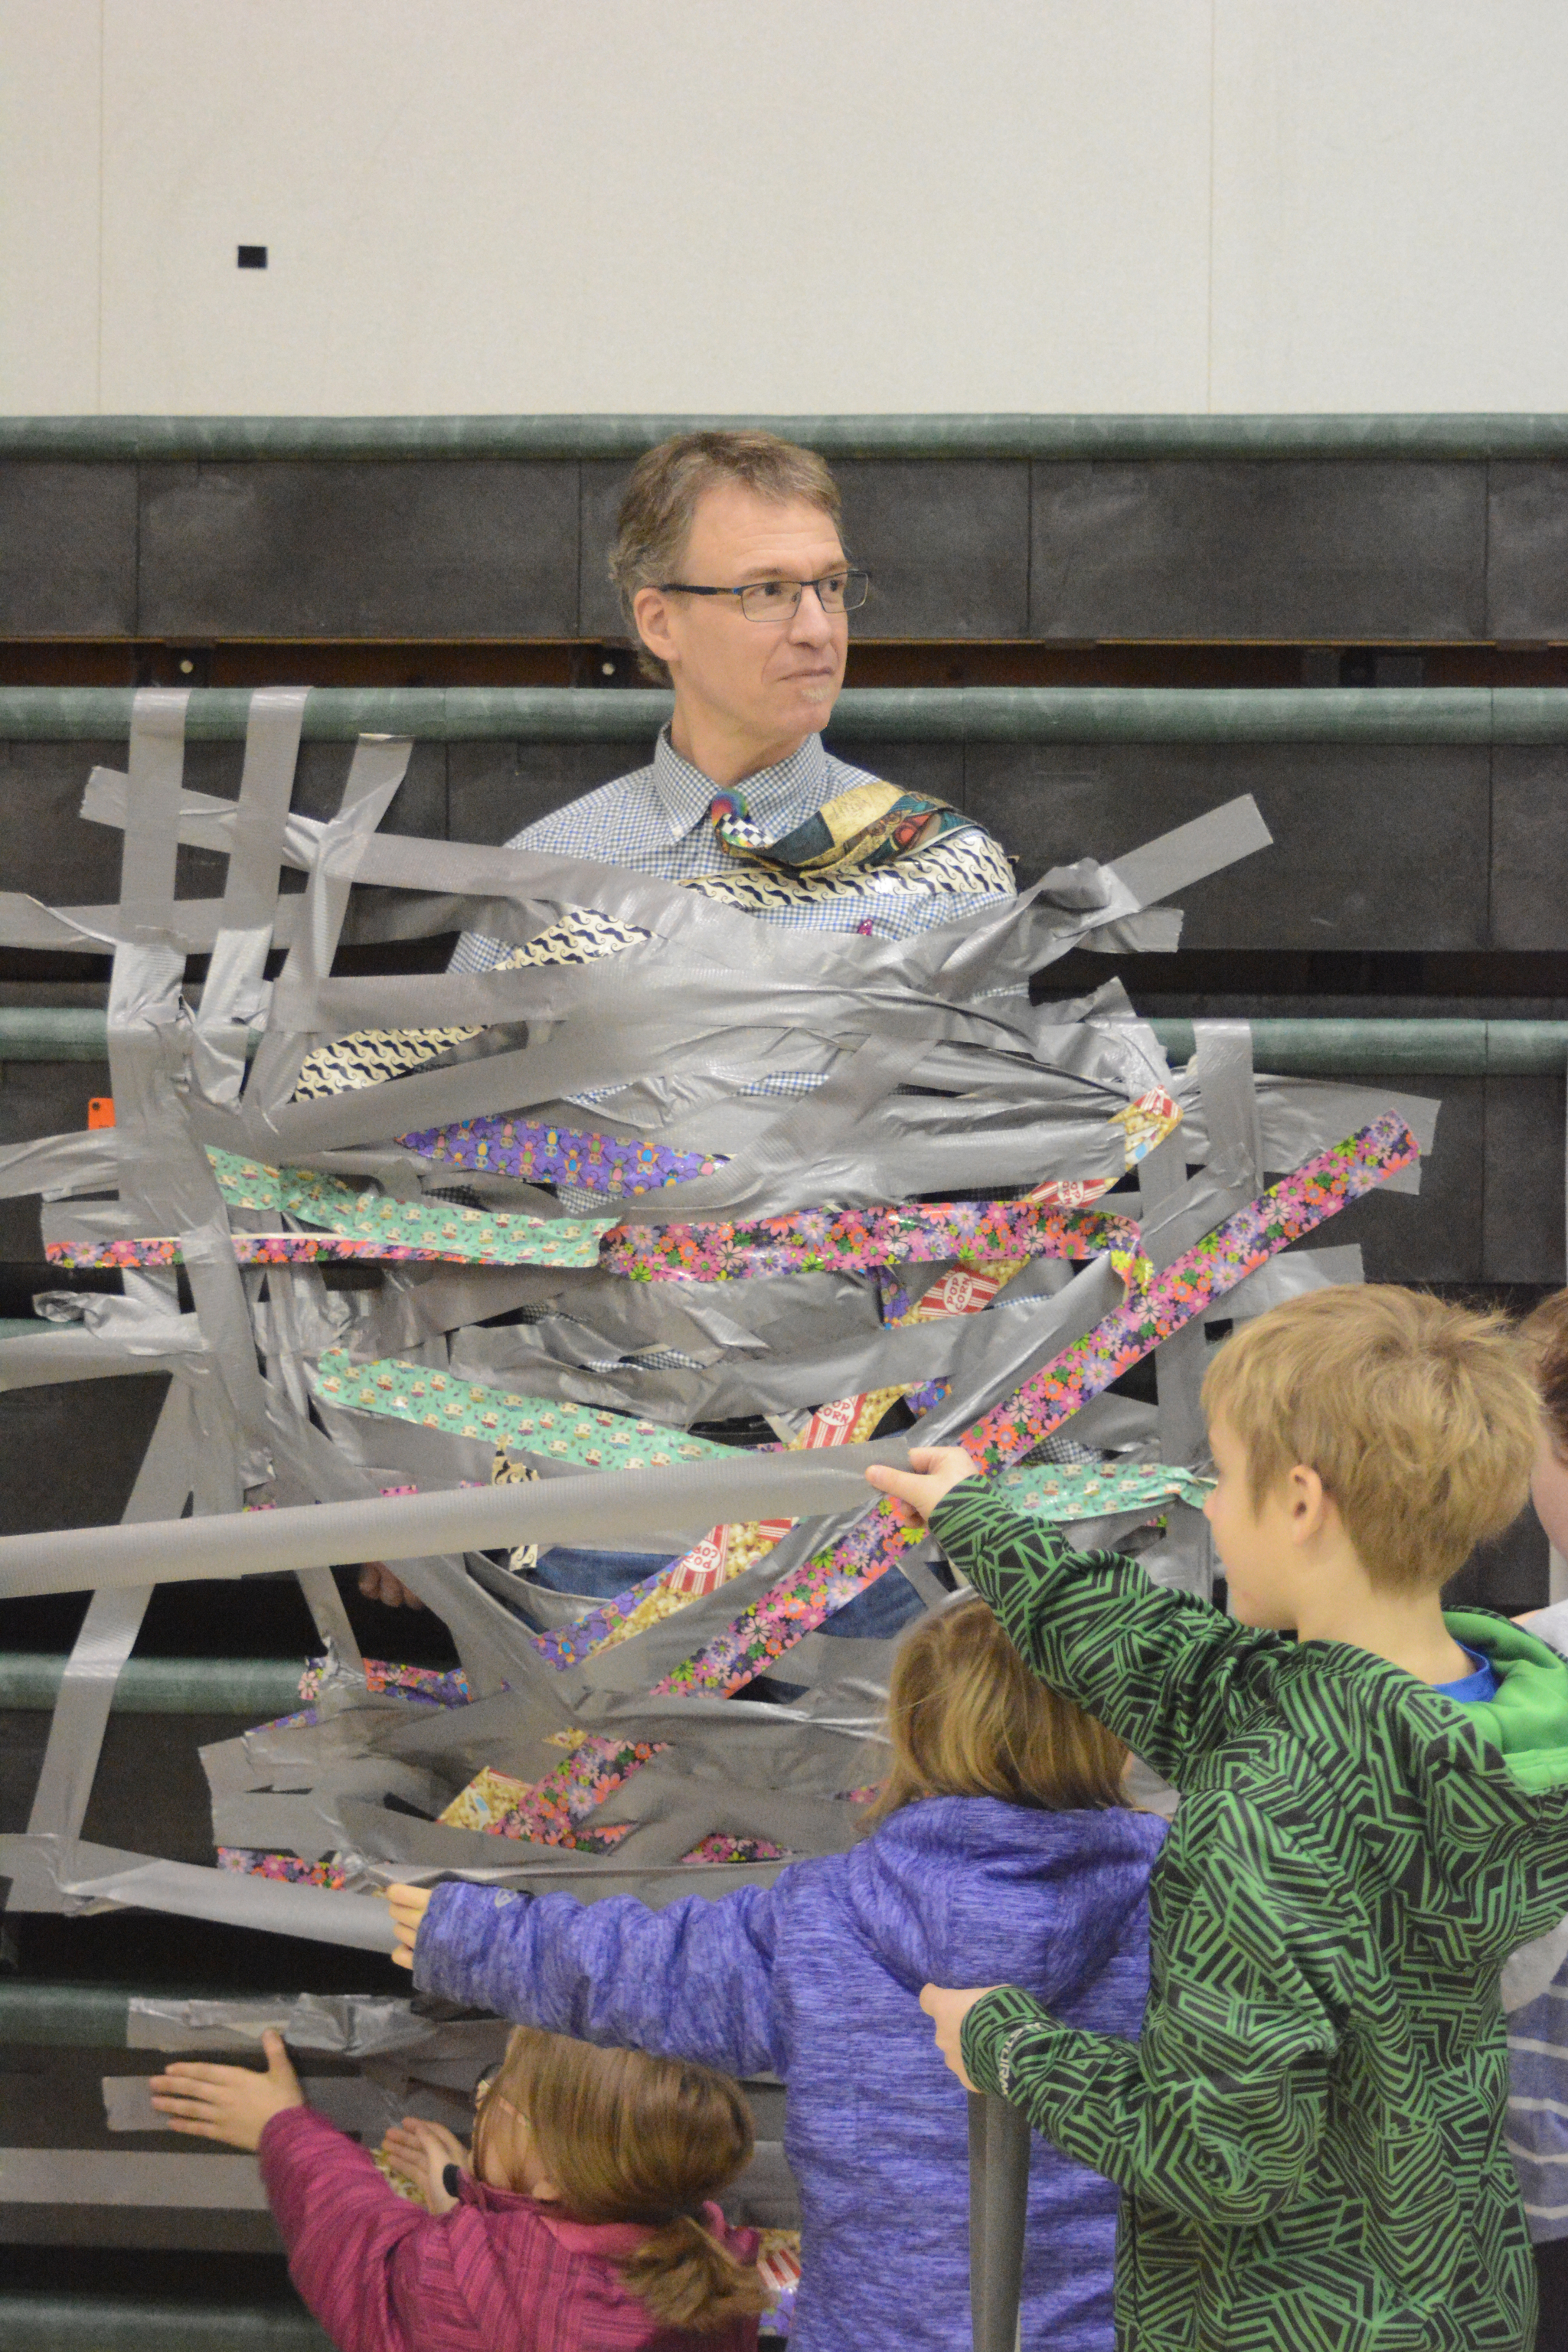 West Homer Elementary Principal Eric Waltenbaugh gets duct taped to the wall in the multipurpose room. Students at West Homer and Fireweed Academy got the reward of plastering duct tape across the principals for filling up a jar with tokens handed out when a student showed good behavior like being respectful and responsible.